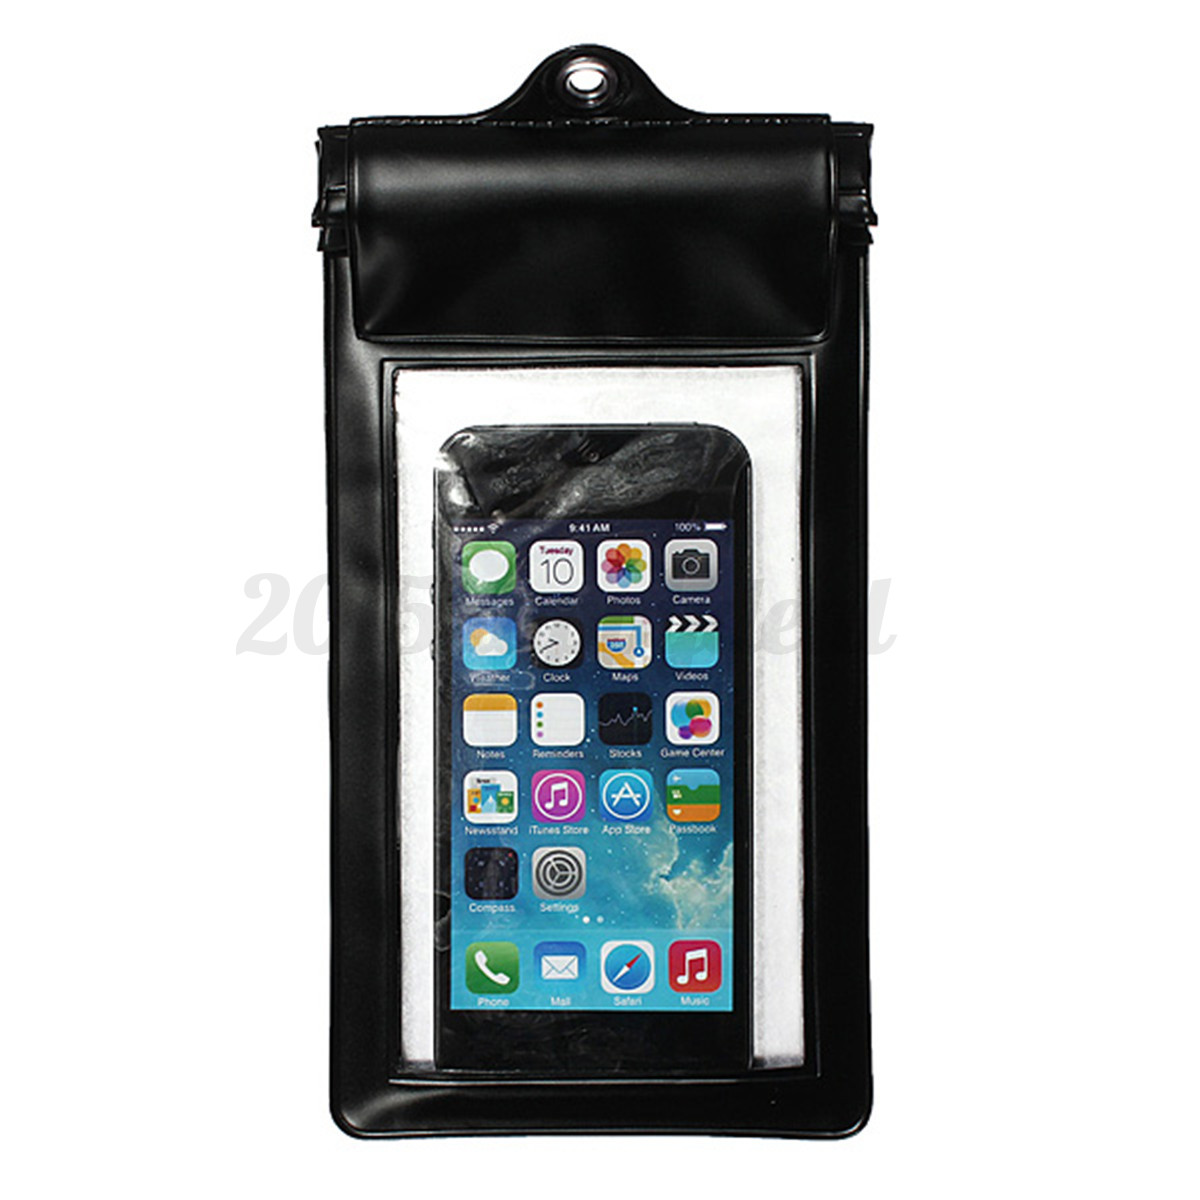 waterproof underwater swim dry pouch bag case cover holder for phone touchscreen ebay. Black Bedroom Furniture Sets. Home Design Ideas